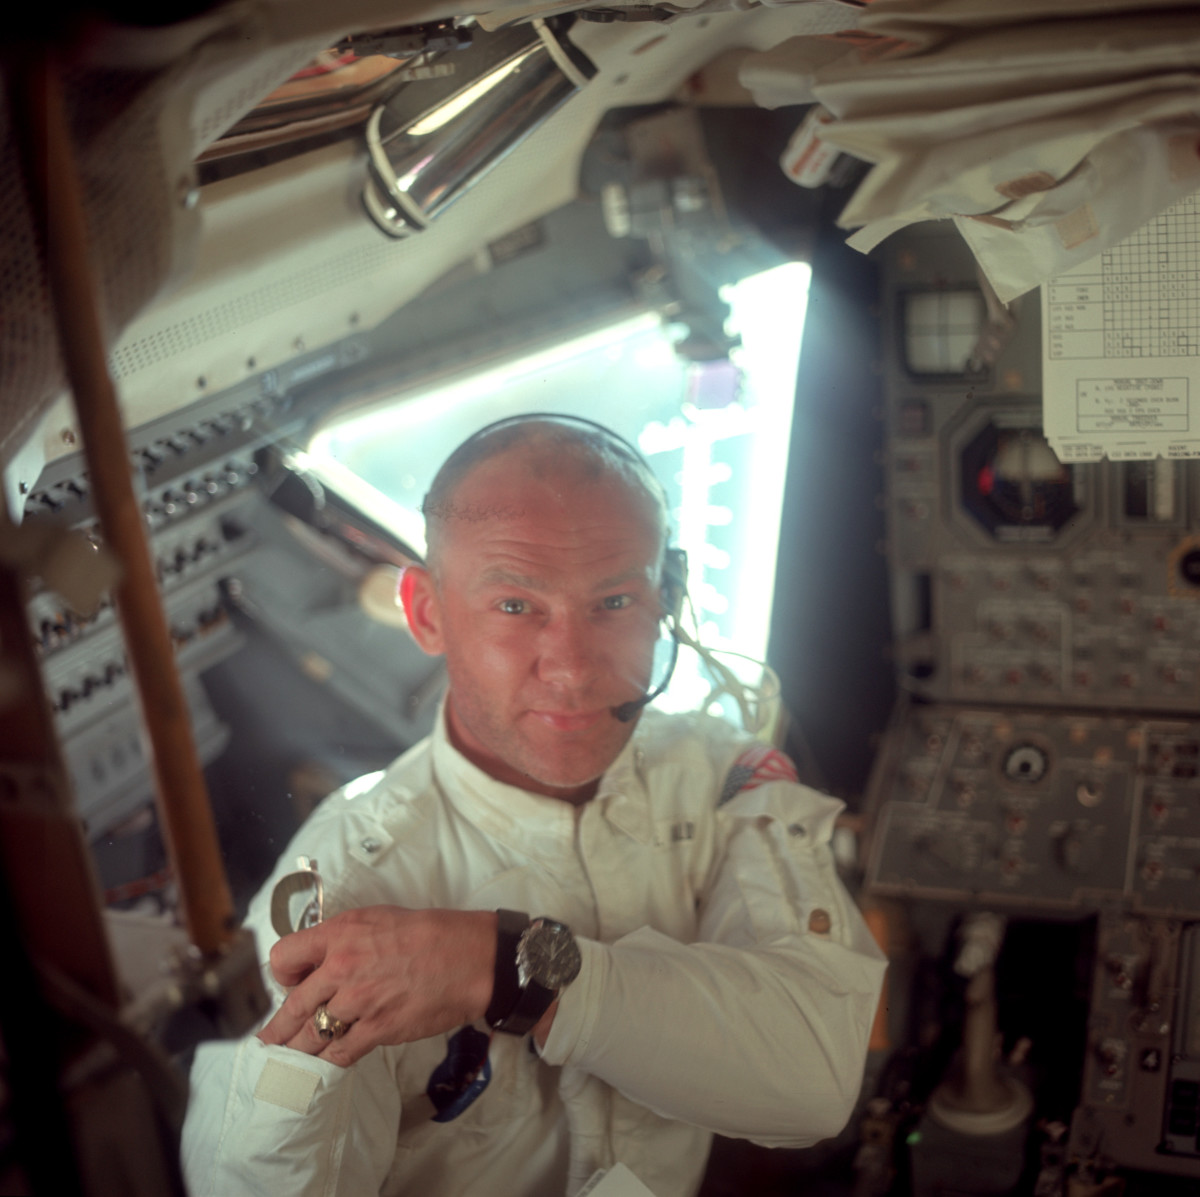 Neil Armstrong took this picture of Buzz Aldrin during their initial inspection of the Lunar Module about 57 minutes after takeoff. Aldrin is wearing his intra-vehicular suit, designed to be flame retardant, and made from the same fabric as the outer layer of the spacesuits.